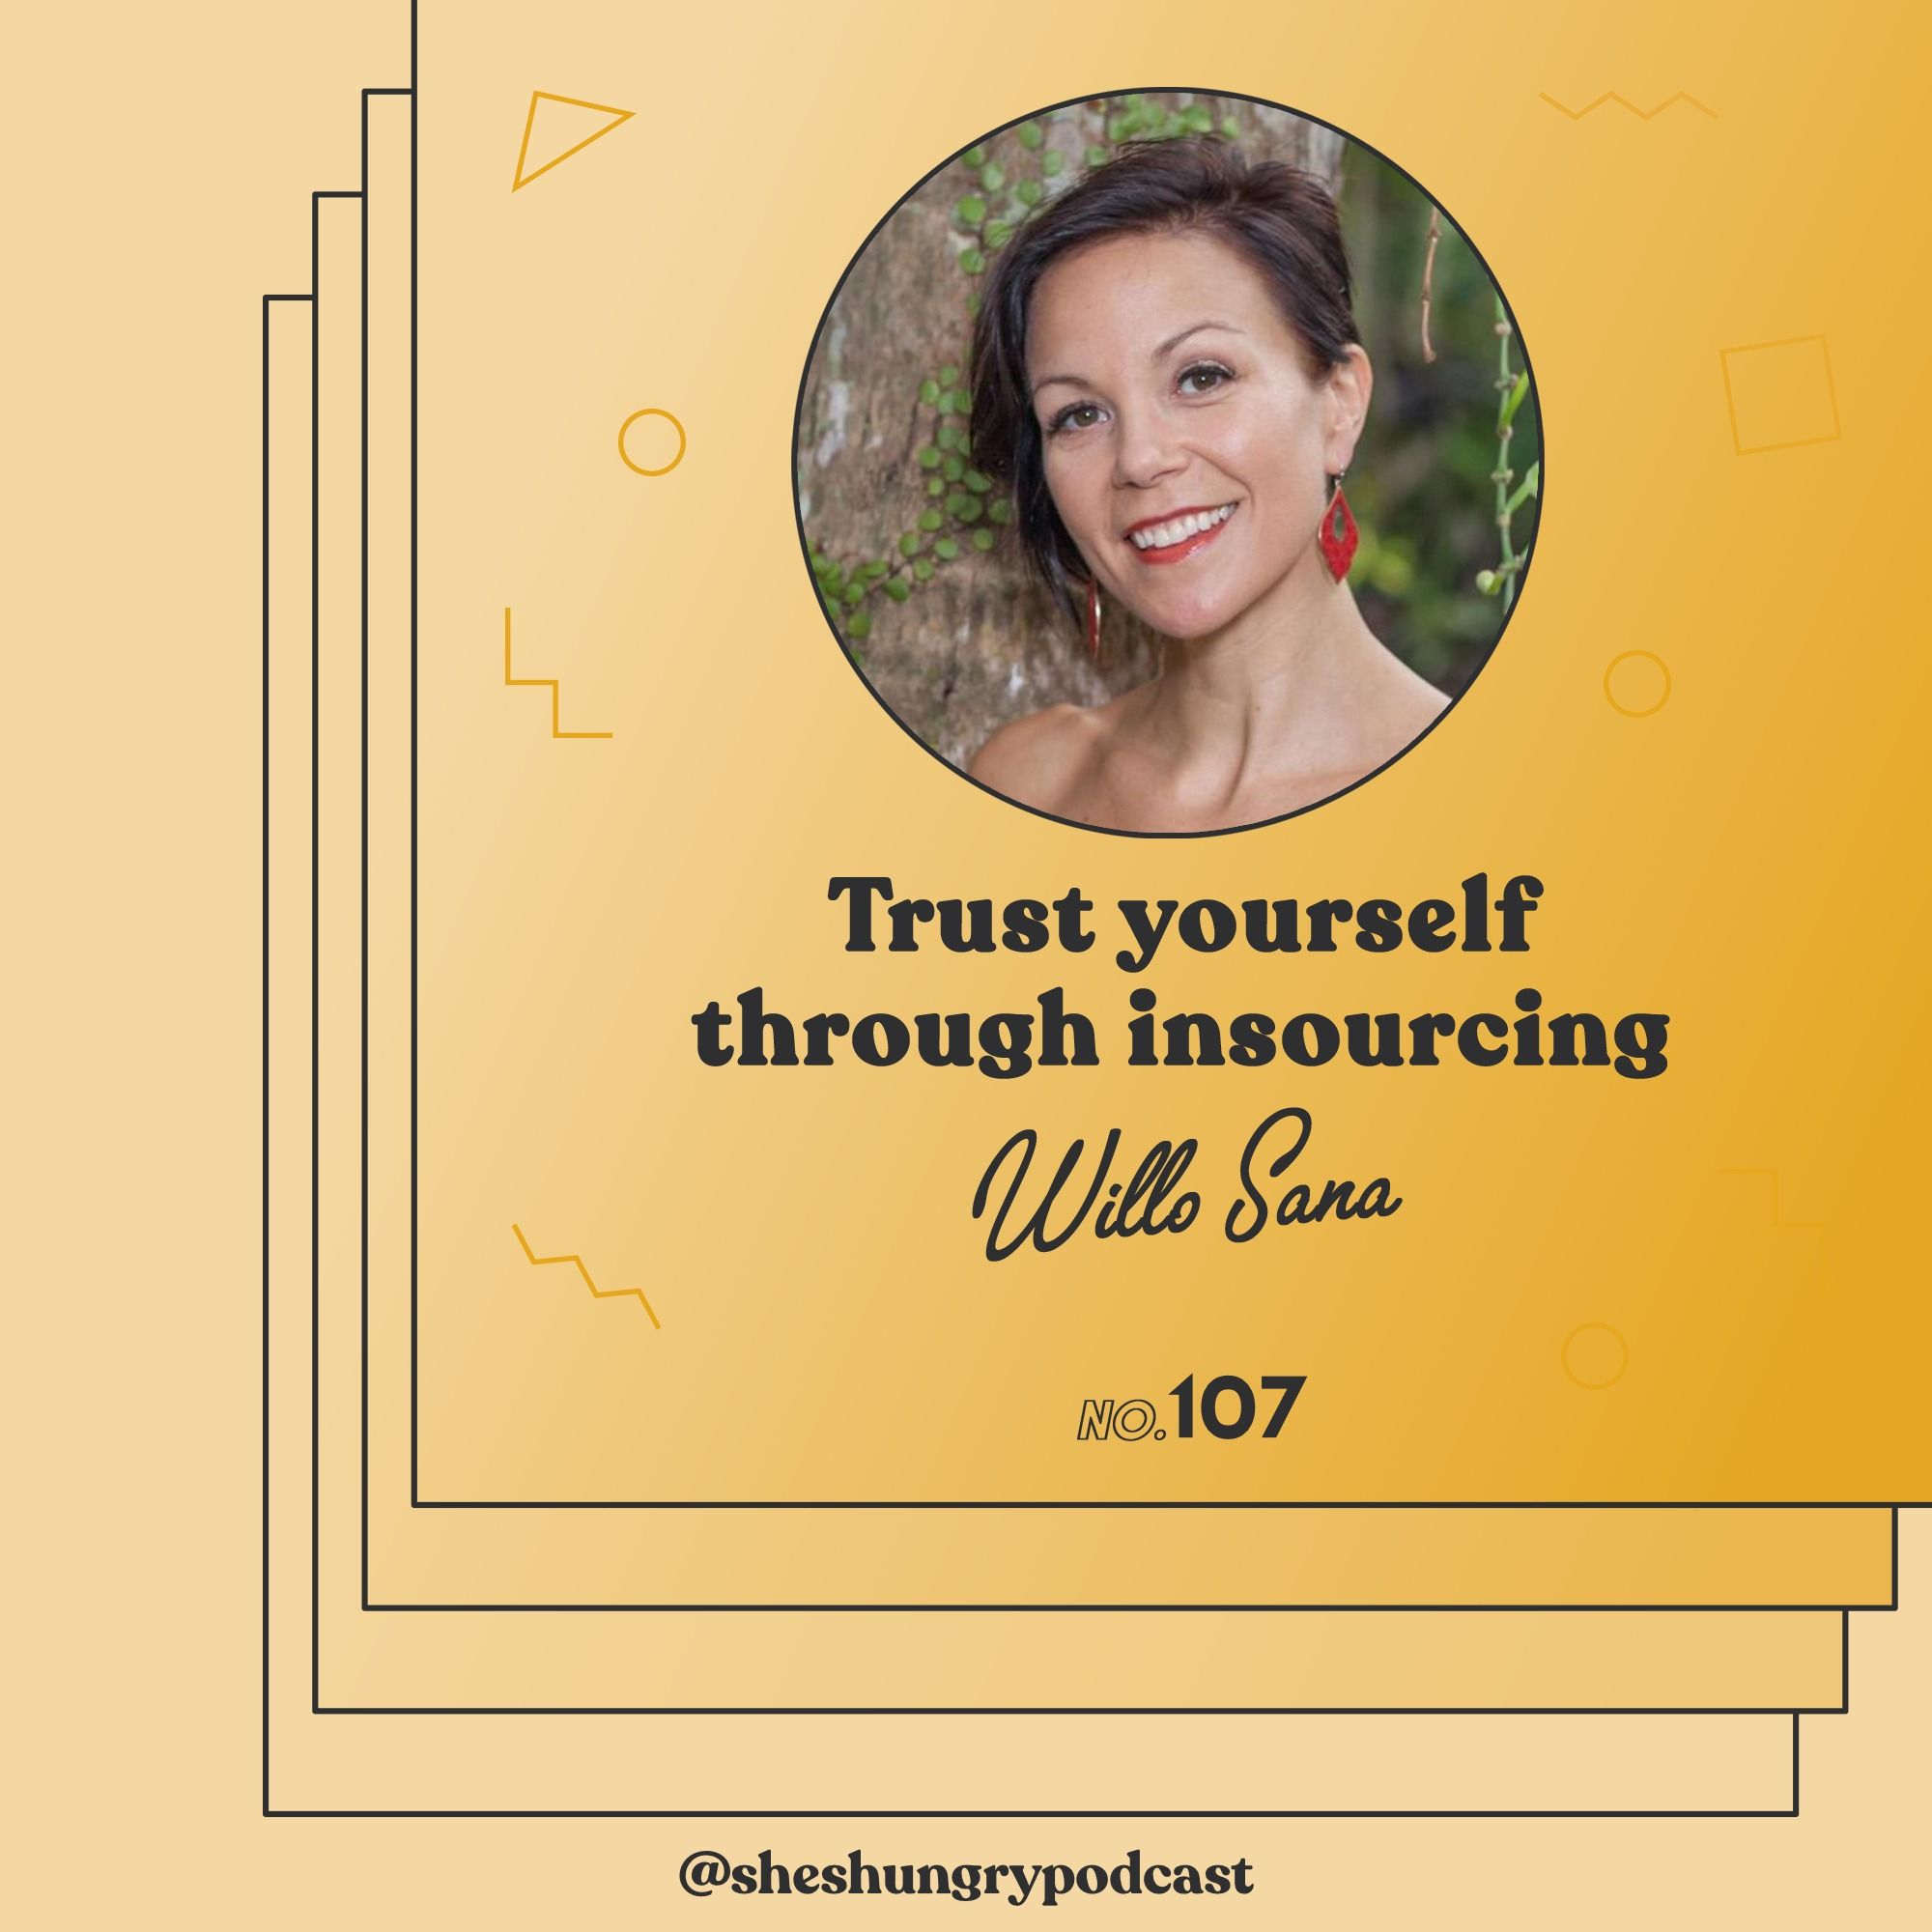 Trust yourself through insourcing, with Willo Sana